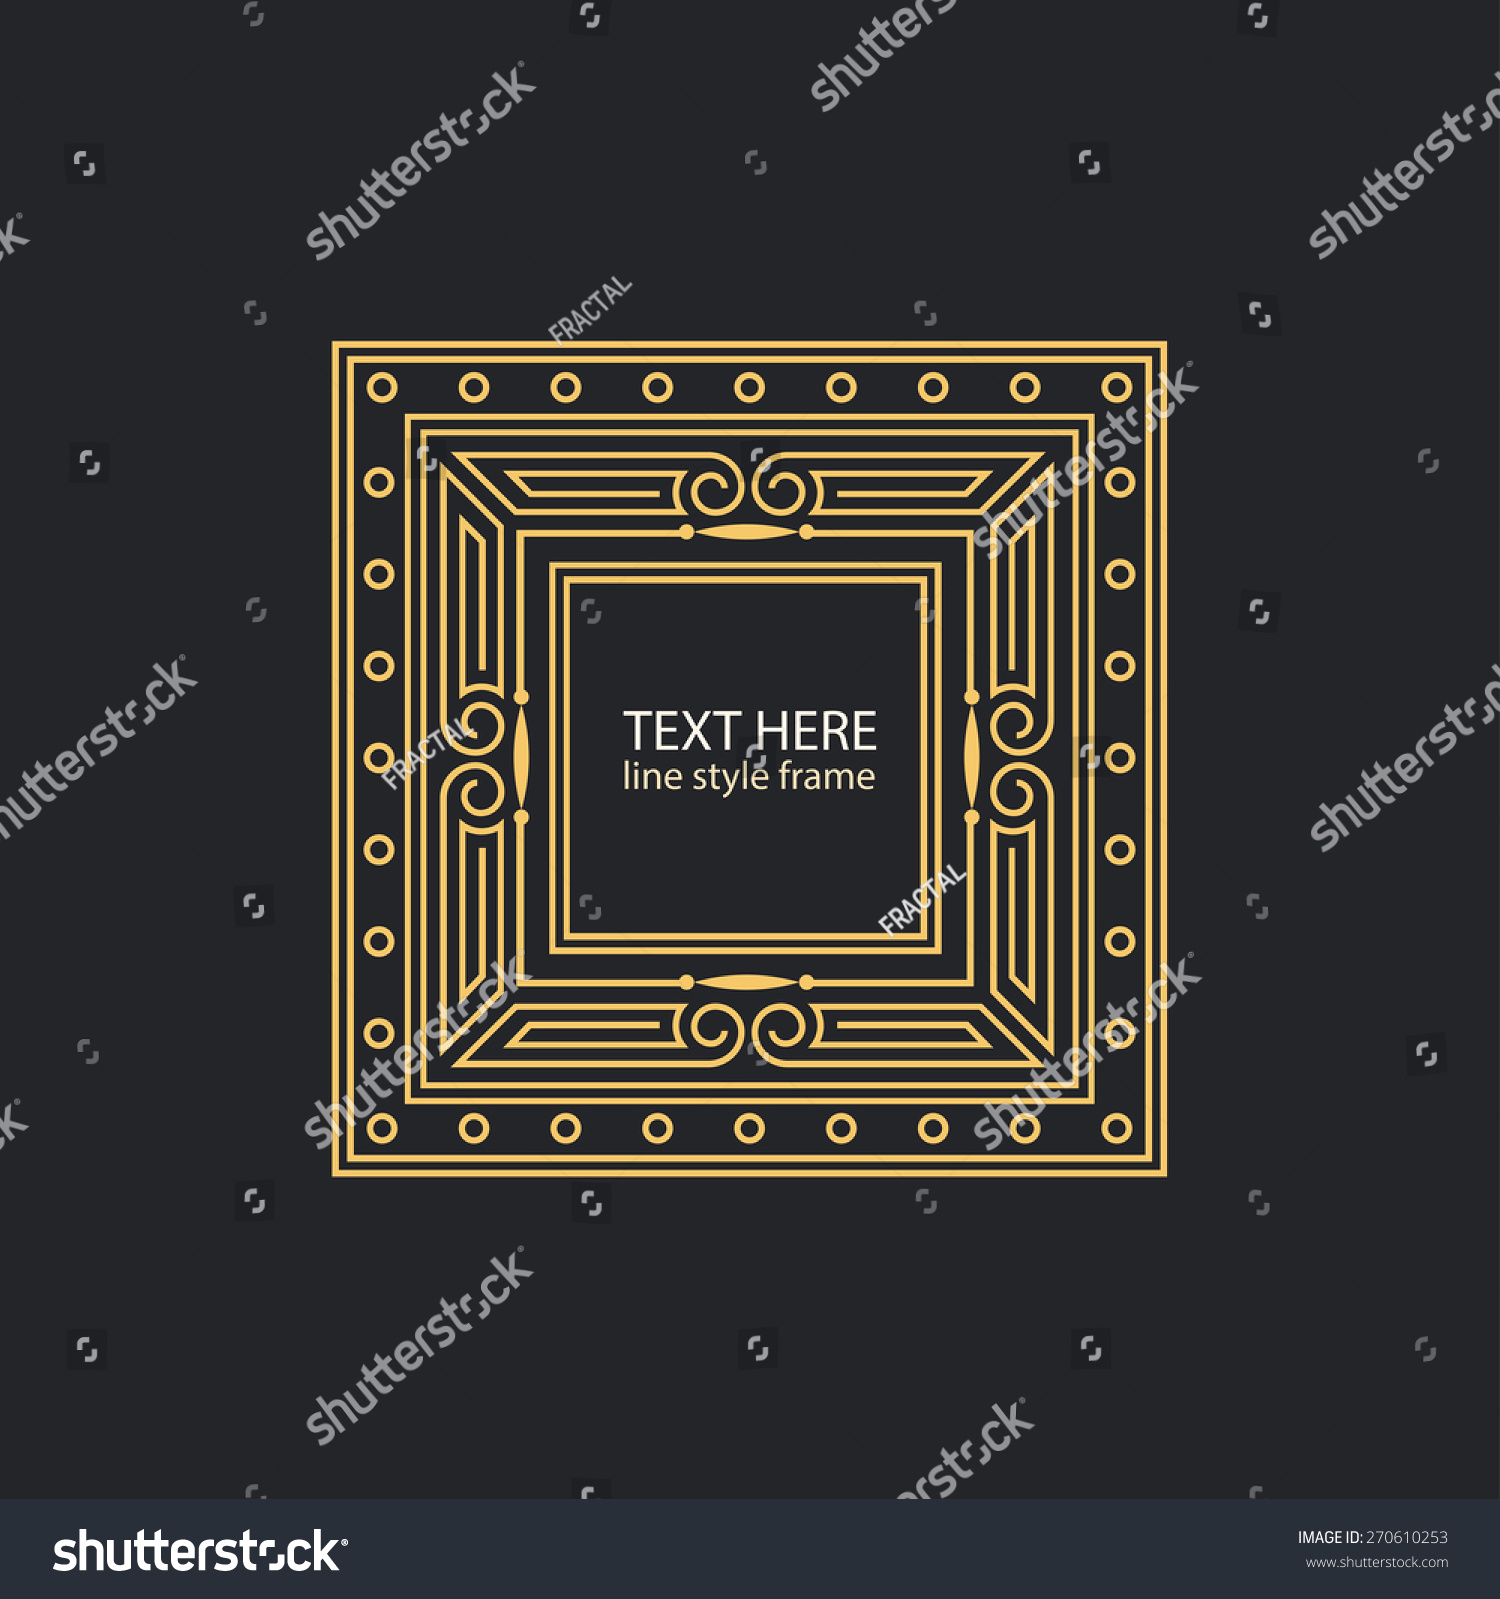 Vector text decoration linear style frame stock vector for A style text decoration